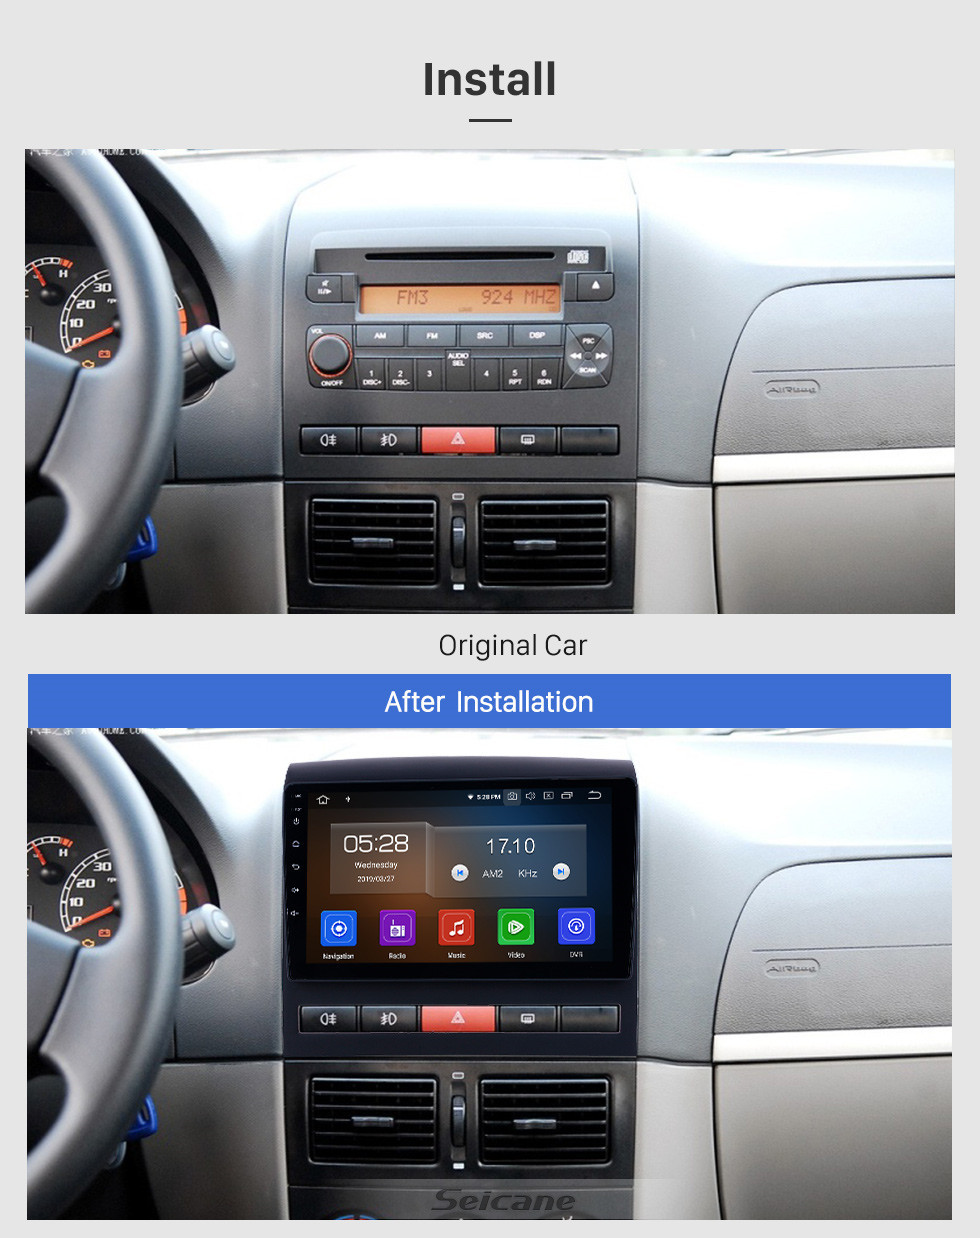 Seicane 2009 Fiat Perla Android 10.0 9 inch GPS Navigation Radio Bluetooth HD Touchscreen USB Carplay support DVR DAB+ OBD2 SWC